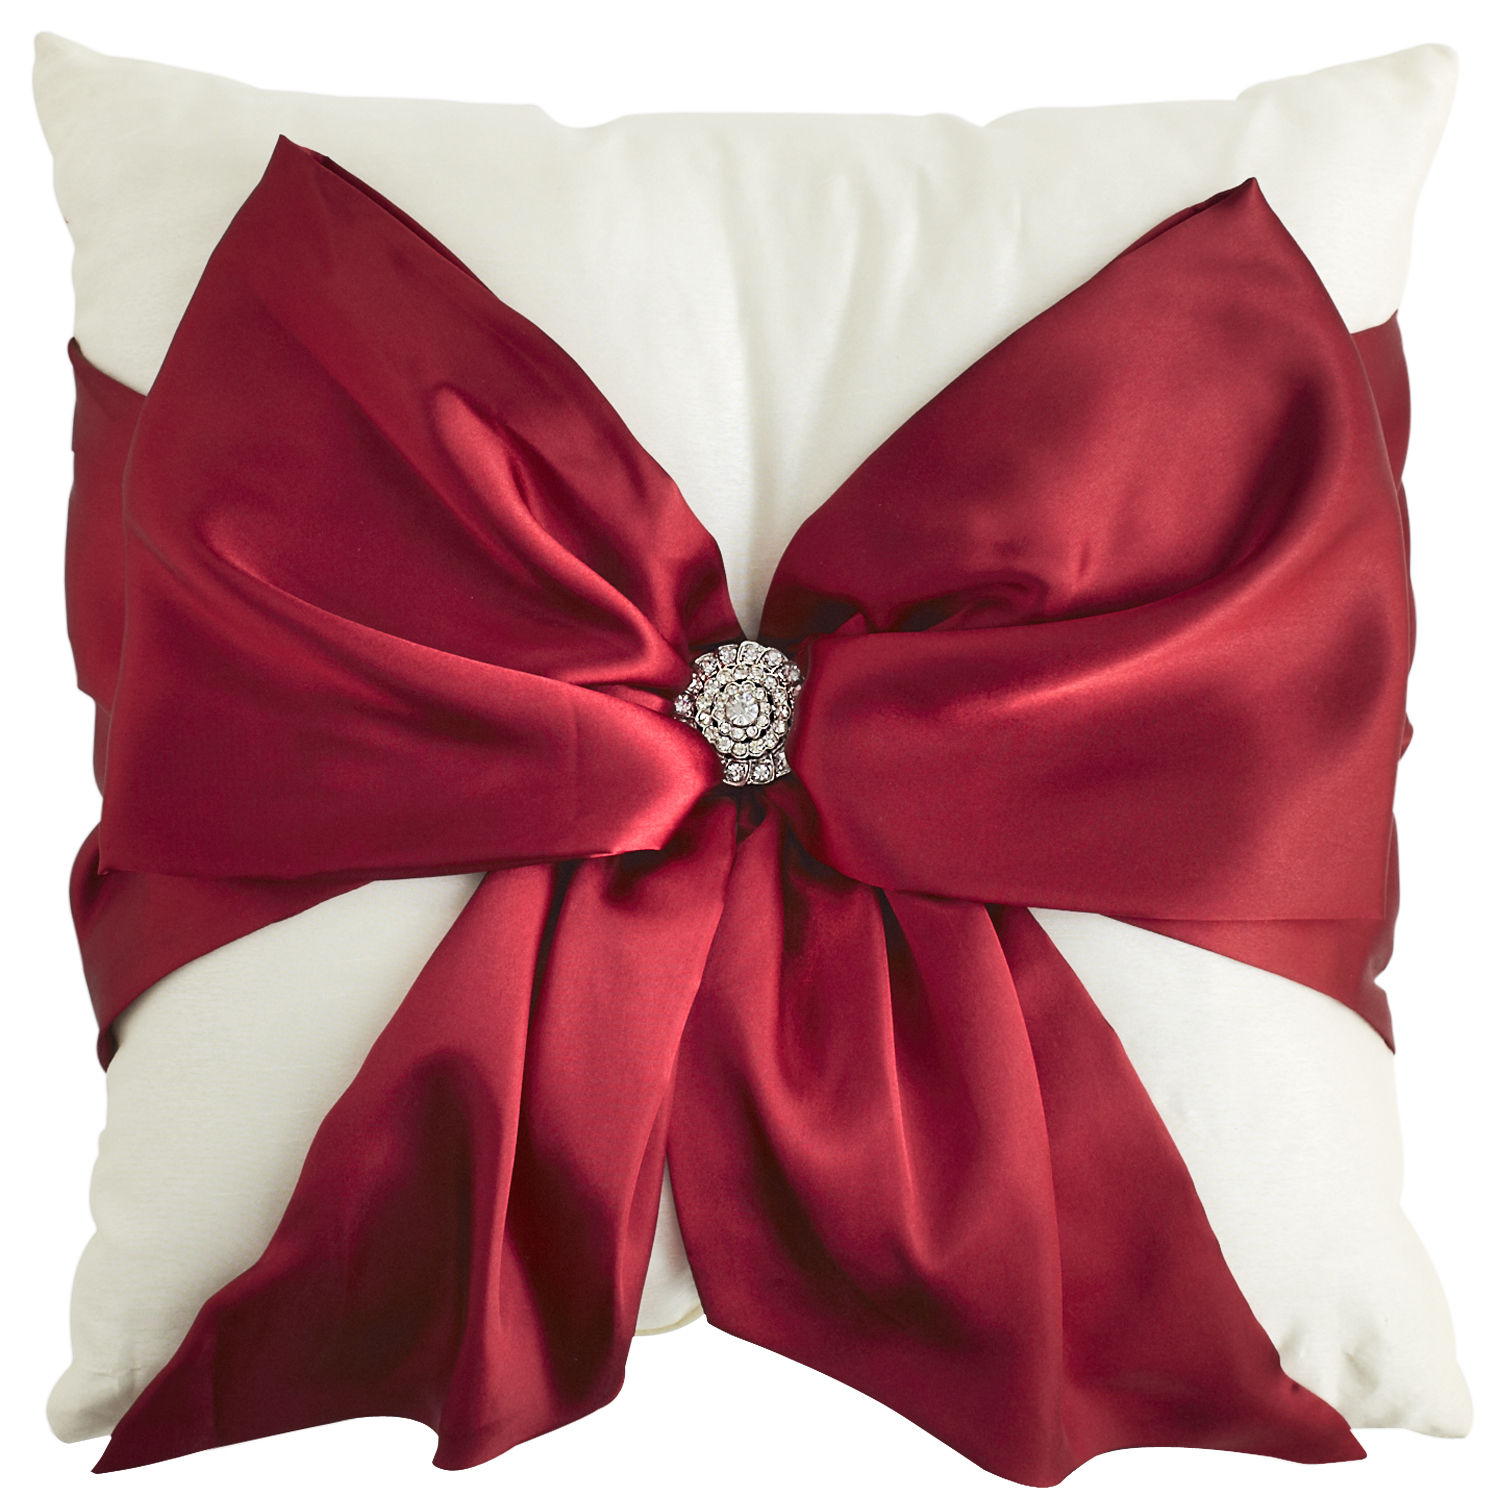 Pier 1 Imports red bow silk pillow